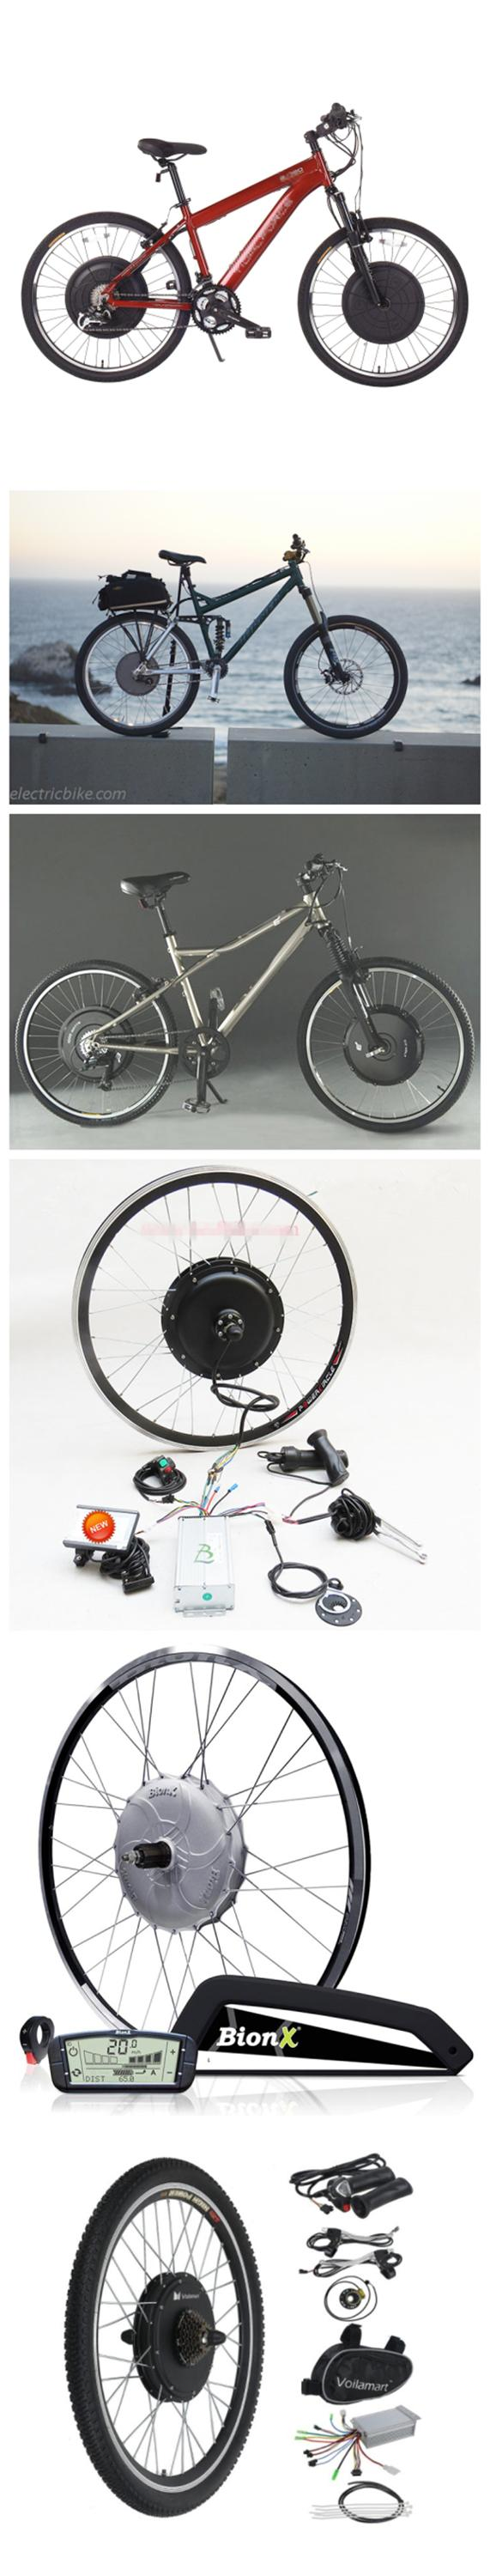 36v 180w brushless wheel hub motor for mountain bike